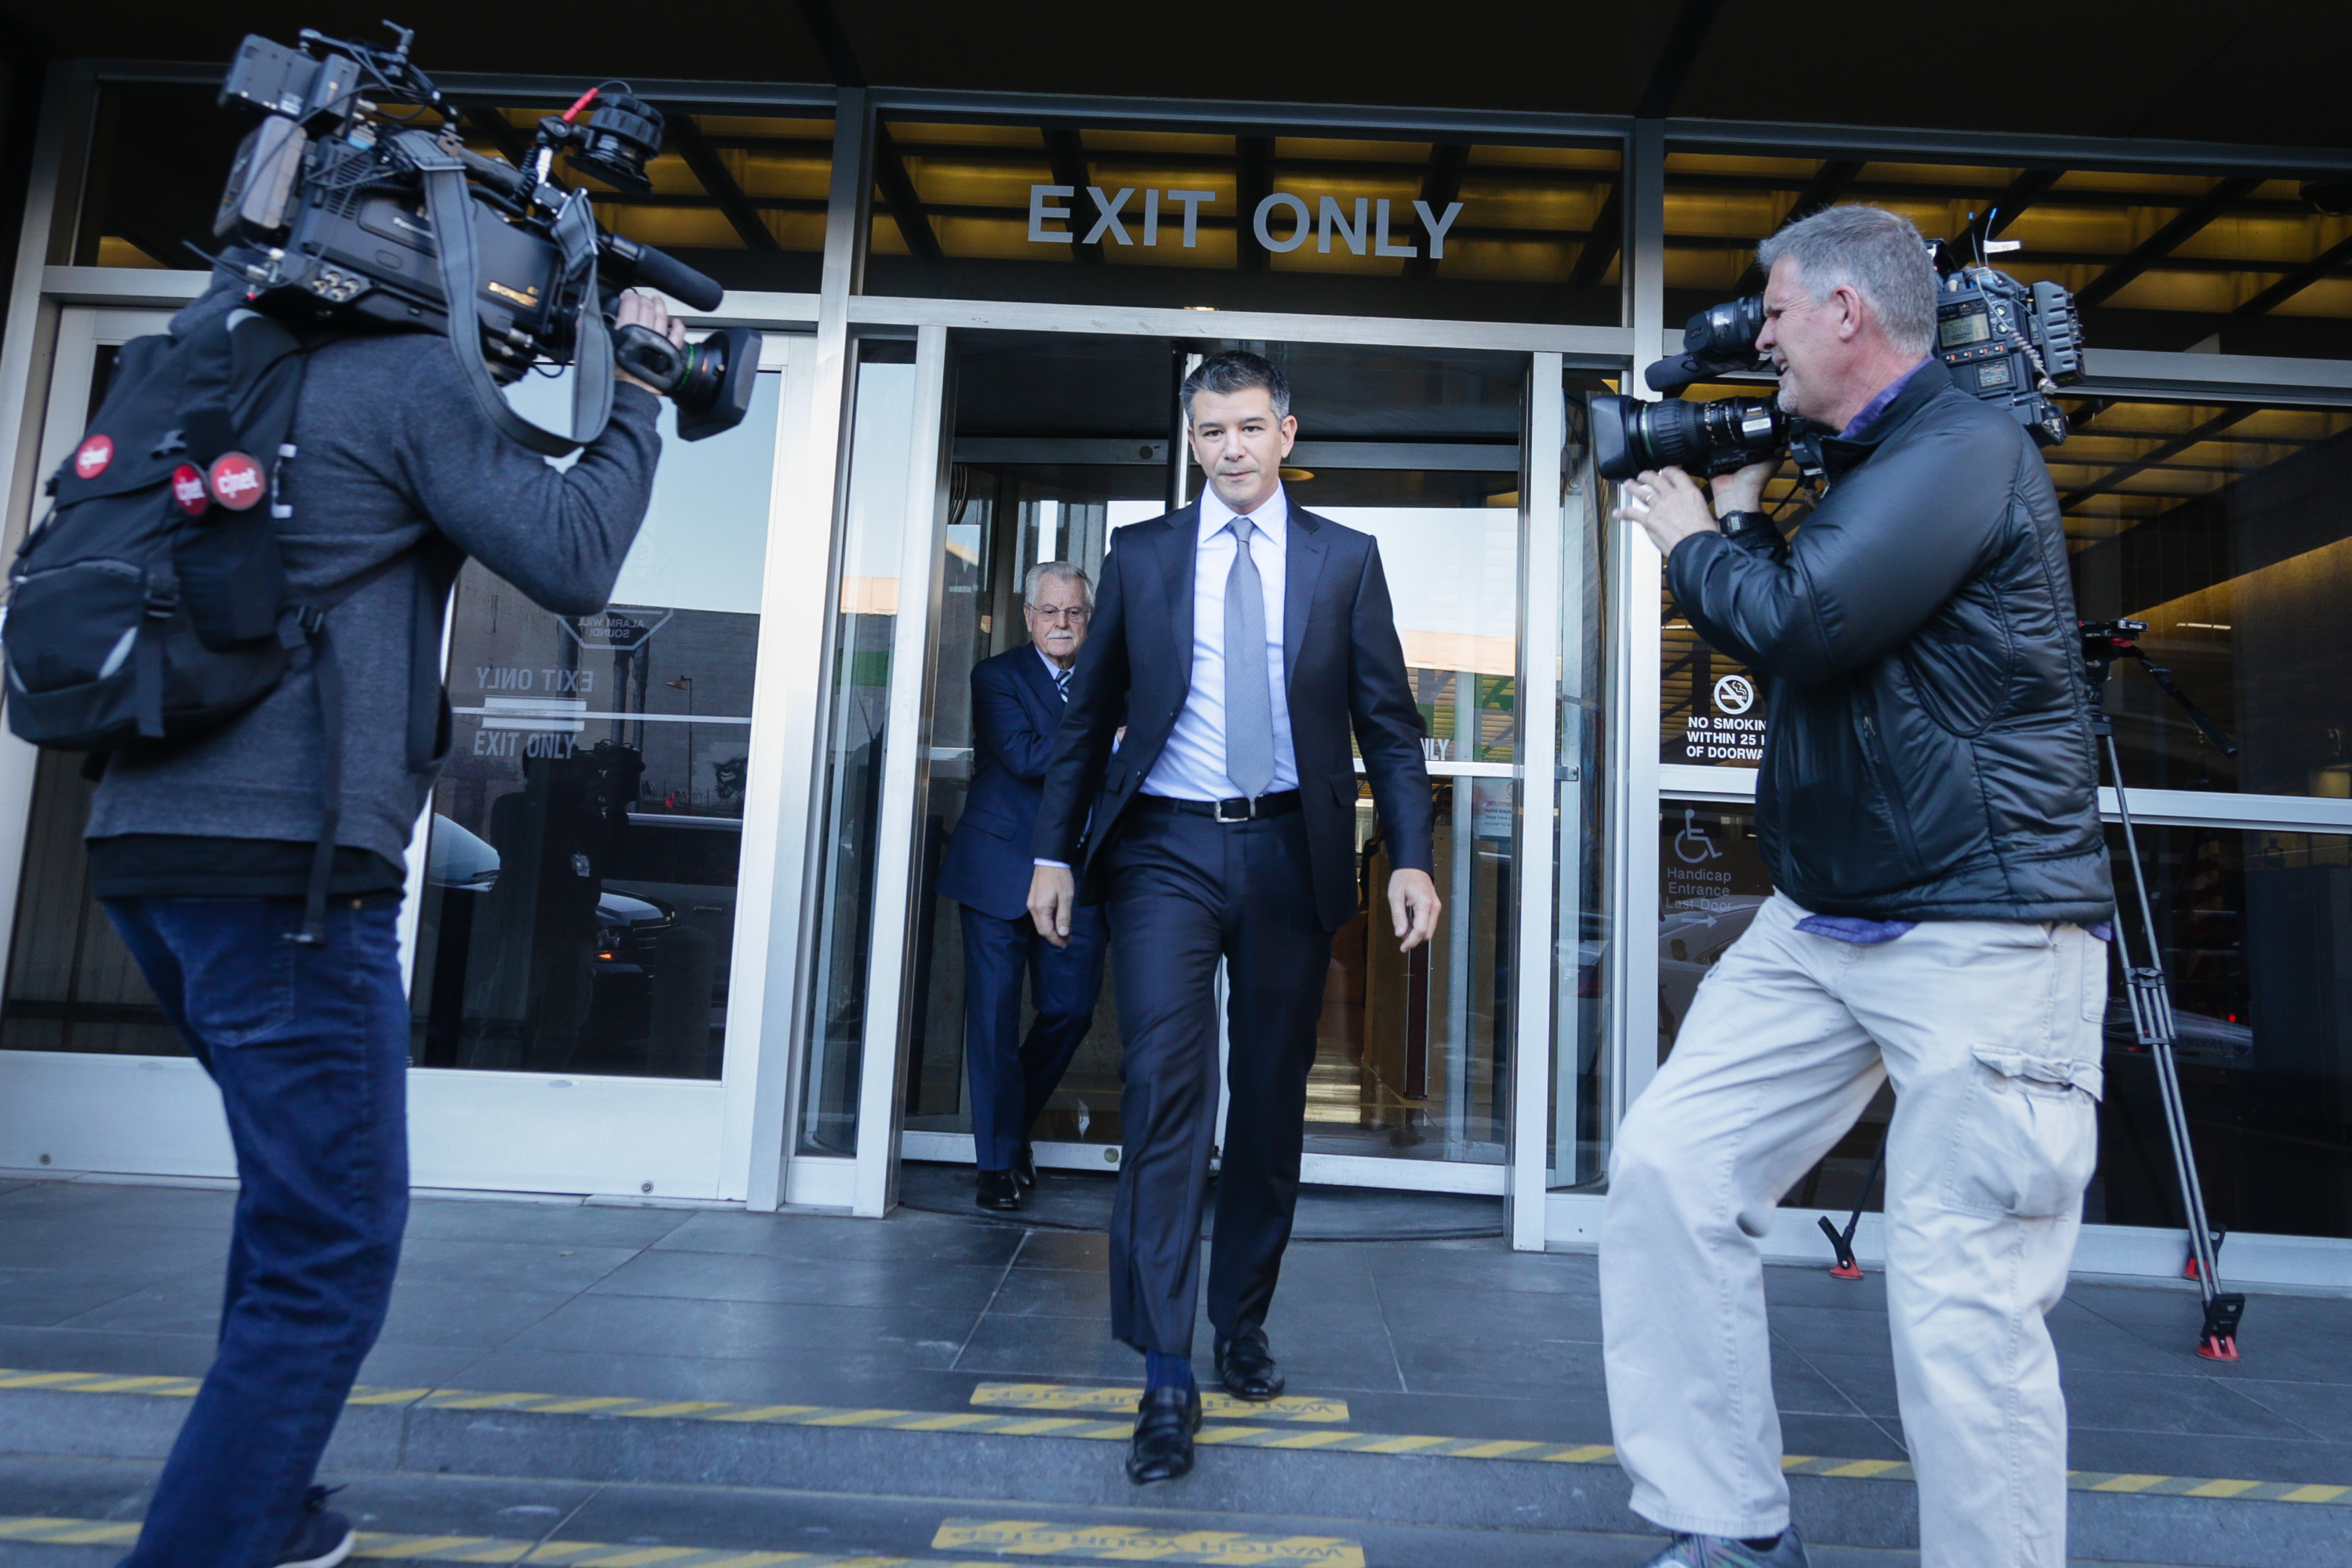 Travis Kalanick, Uber's founder and ex-CEO, being confronted with TV cameras as he walks out of the courthouse.